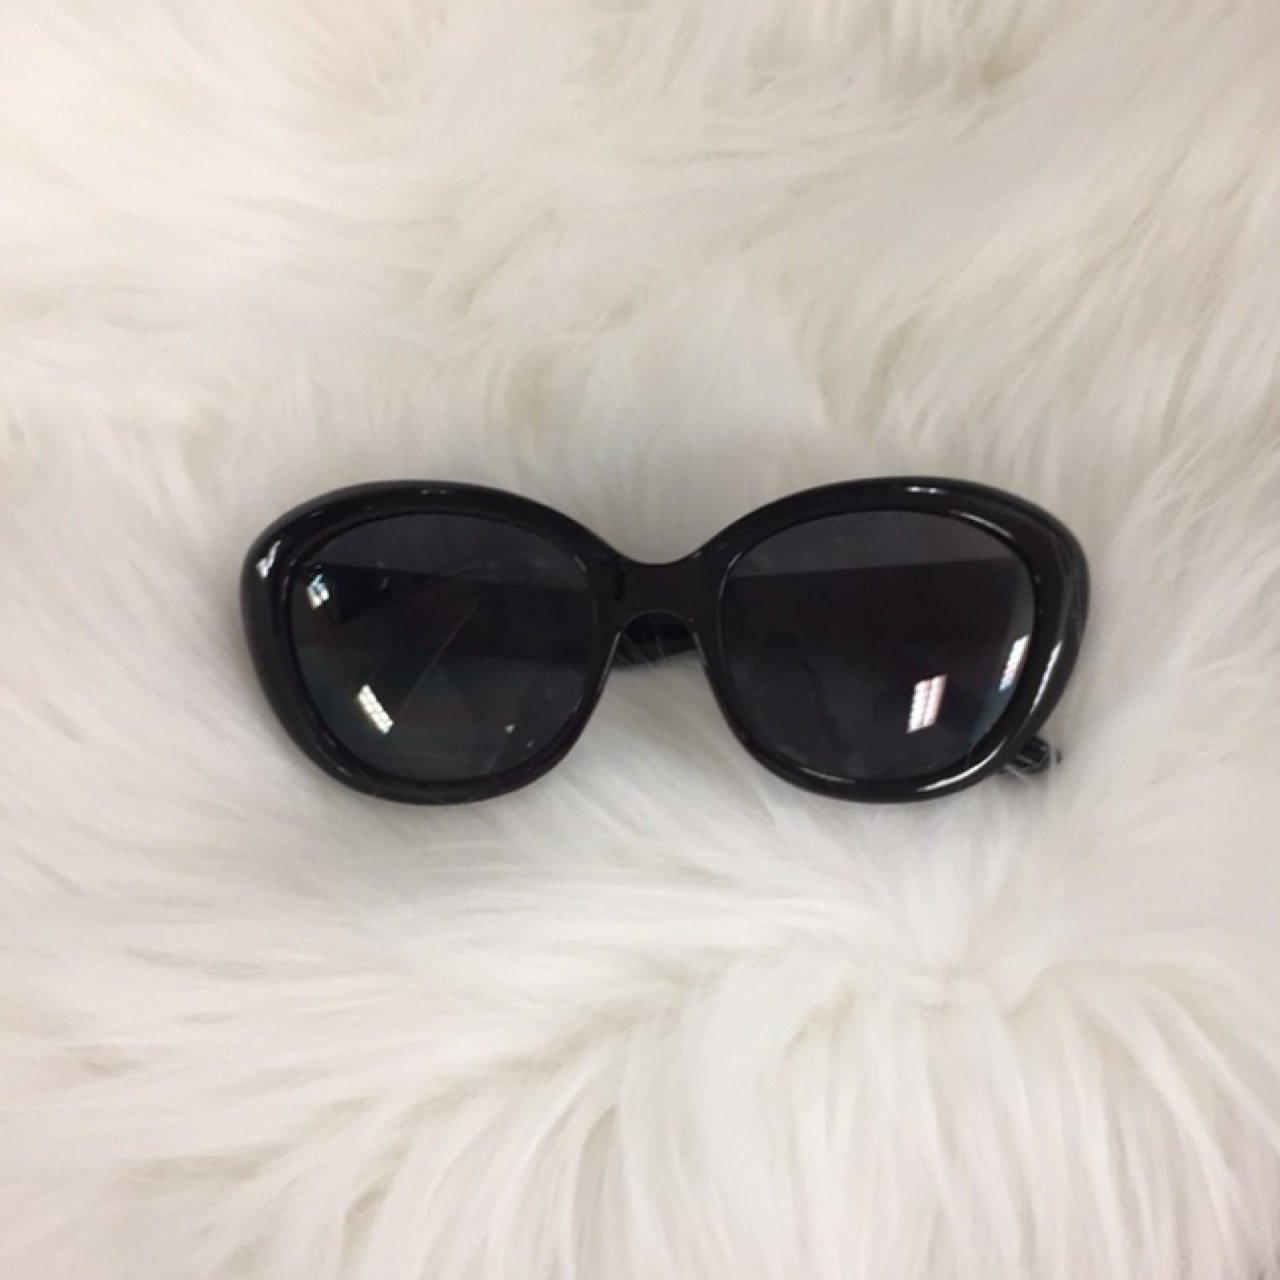 8c6380a0020 Cat eye classic black sunglasses in good condition